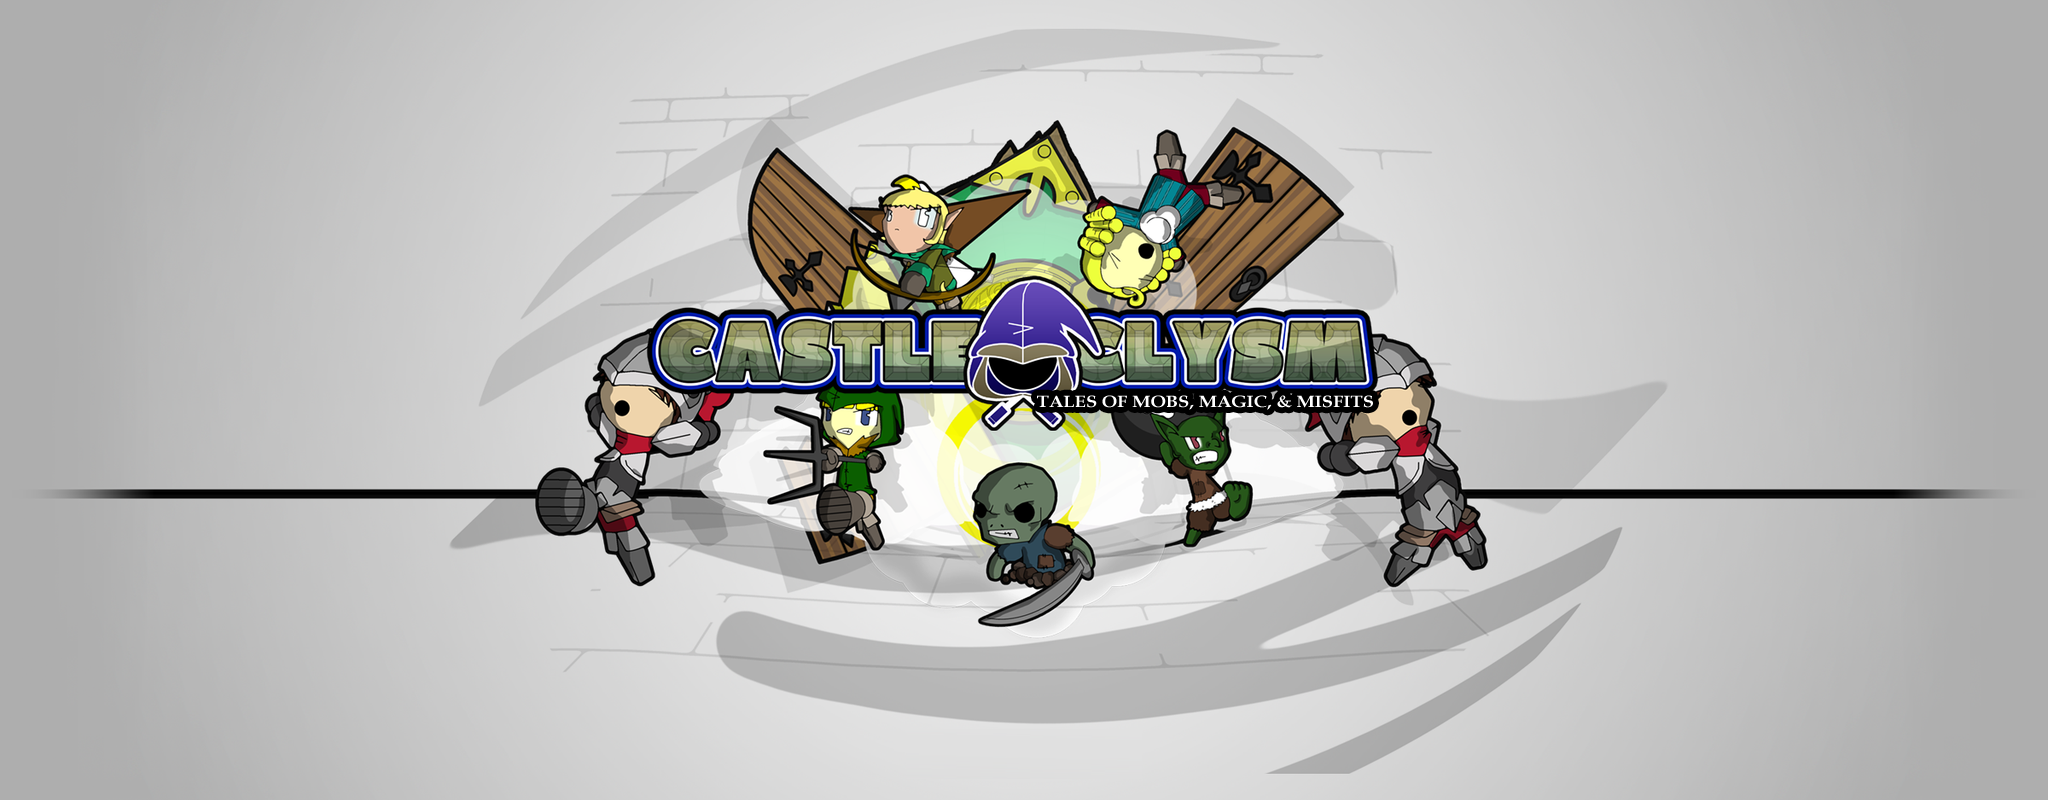 Castleclysm: Tales of Mobs, Magic, & Misfits